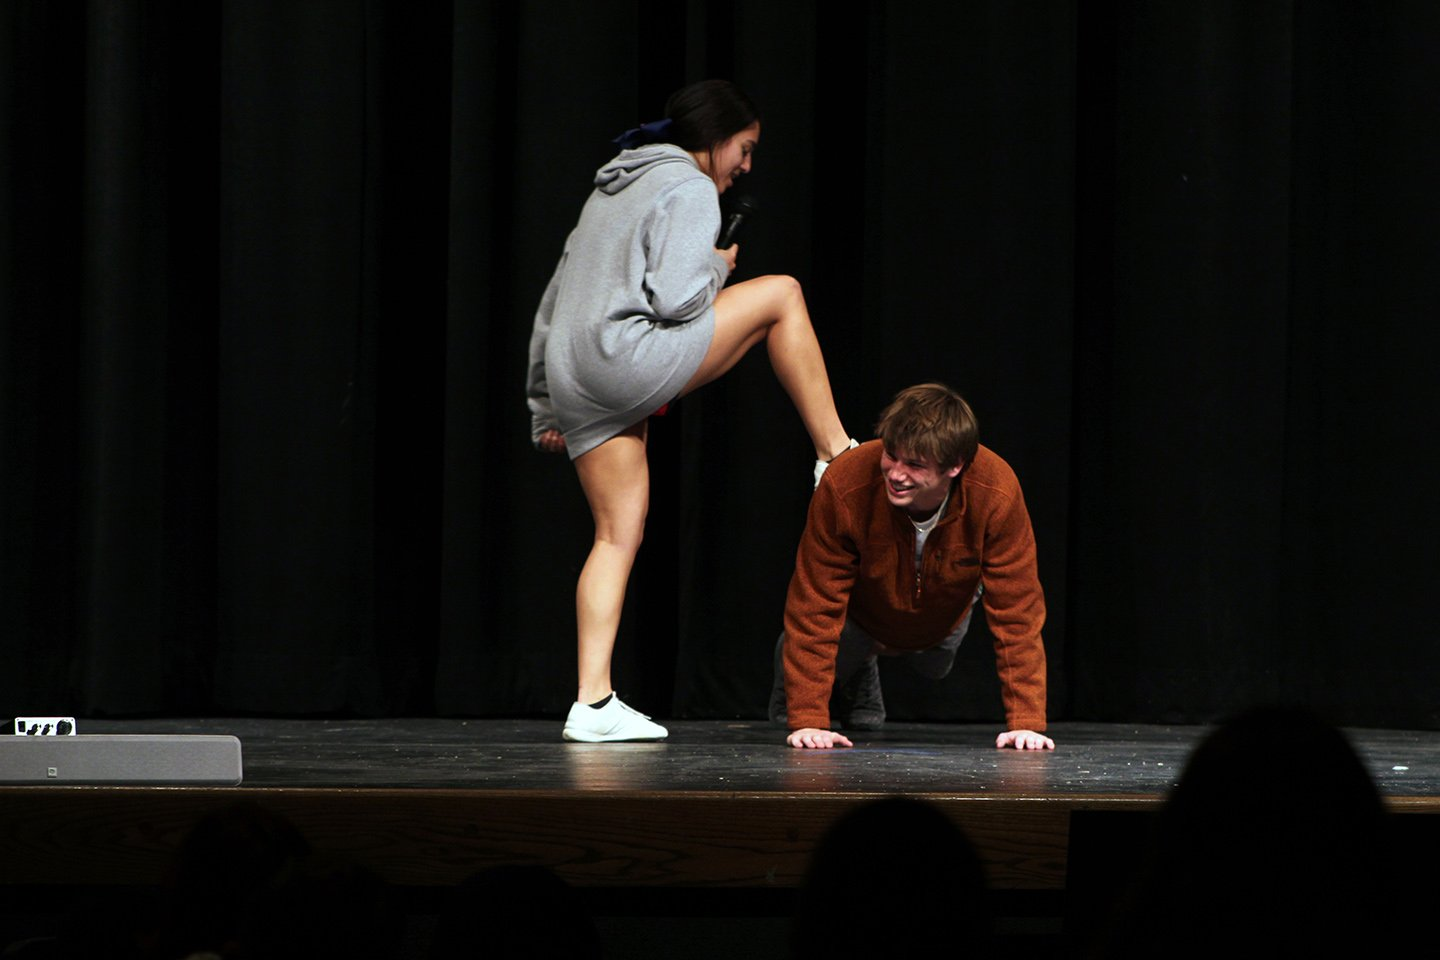 """Michael Doiel (on ground) and Mya Brown (standing) present their act """"Pushups"""" to the audience full of students with Doiel doing the pushups while Brown makes him do them."""